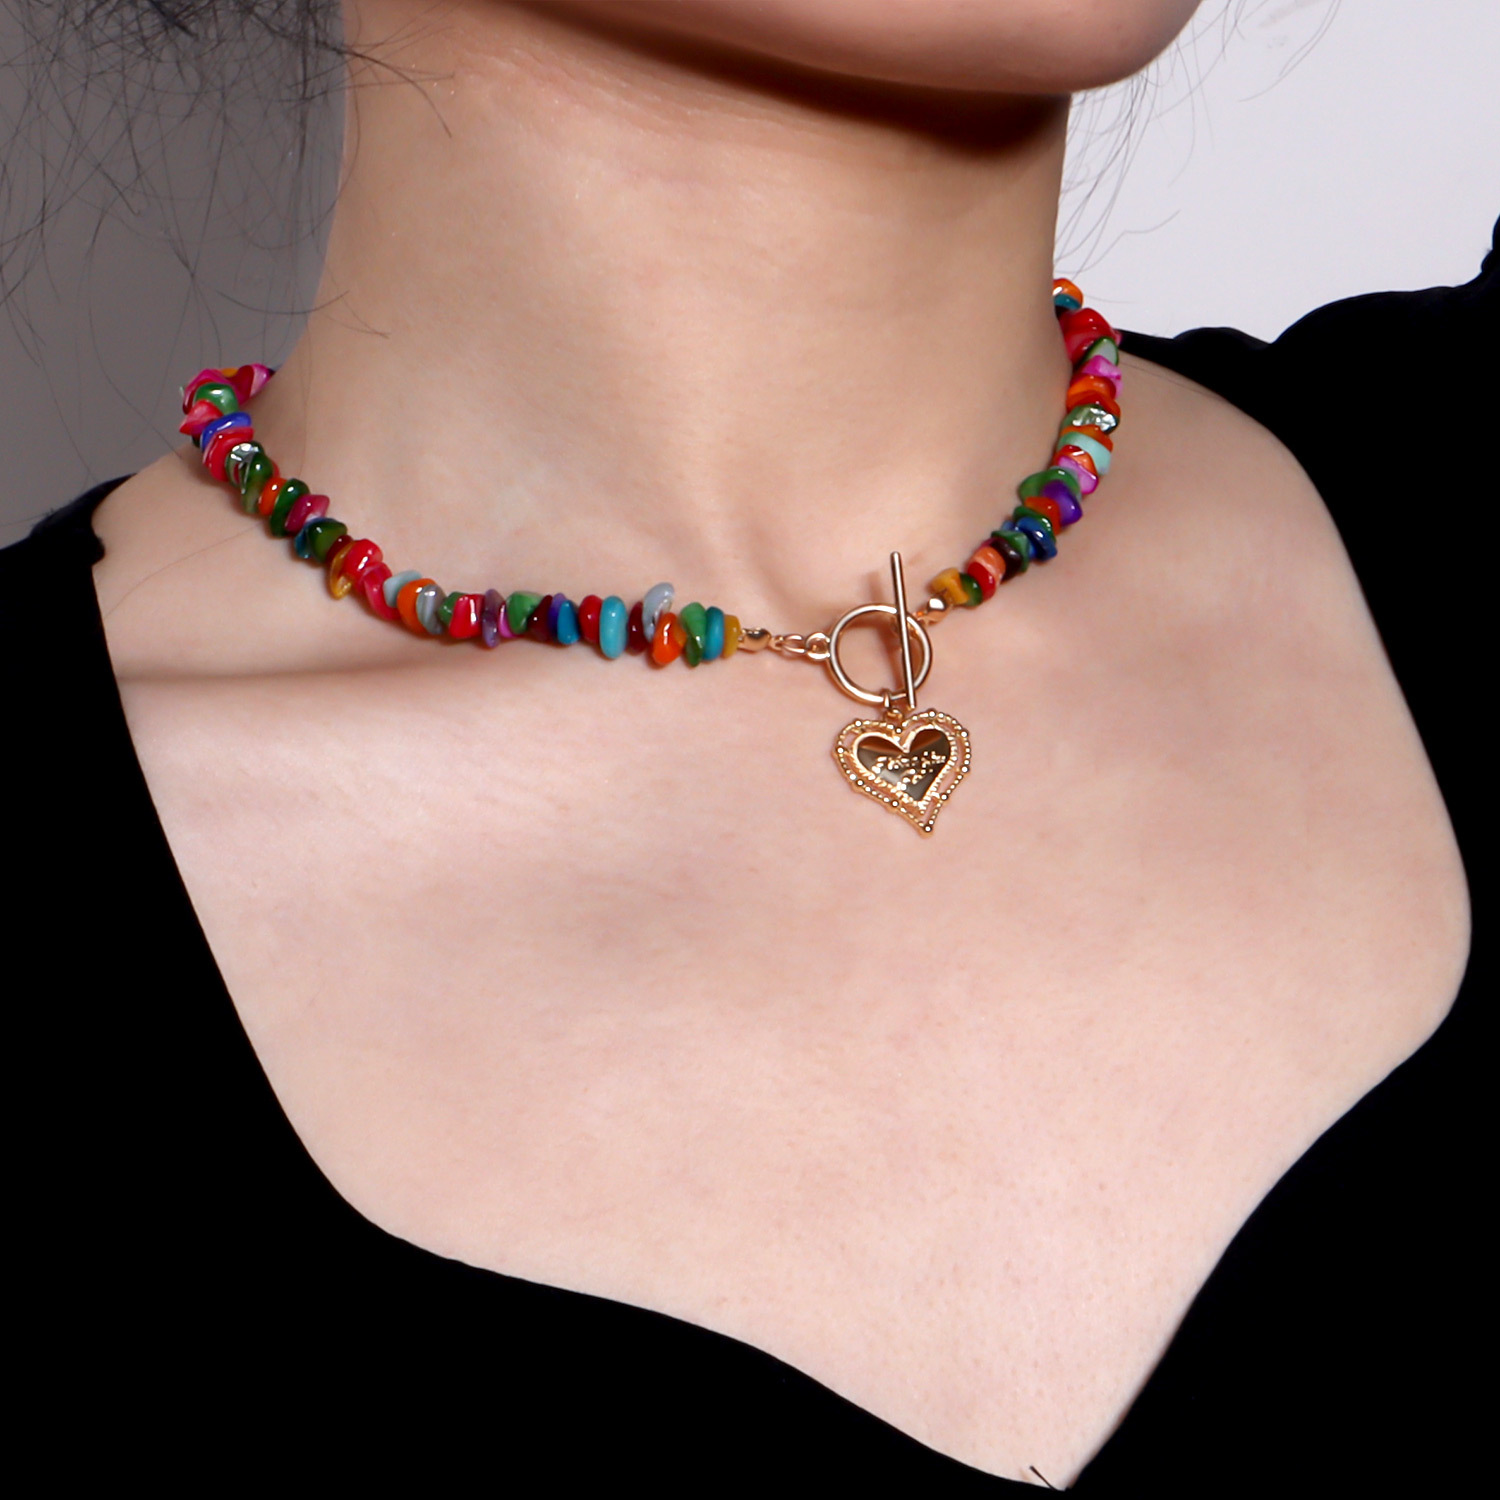 Trendy Natural Stone Chain Necklace Colorful Irregular Stones Heart Pendant Necklace for Women Ot Buckle 2021 Bohemian Jewelry